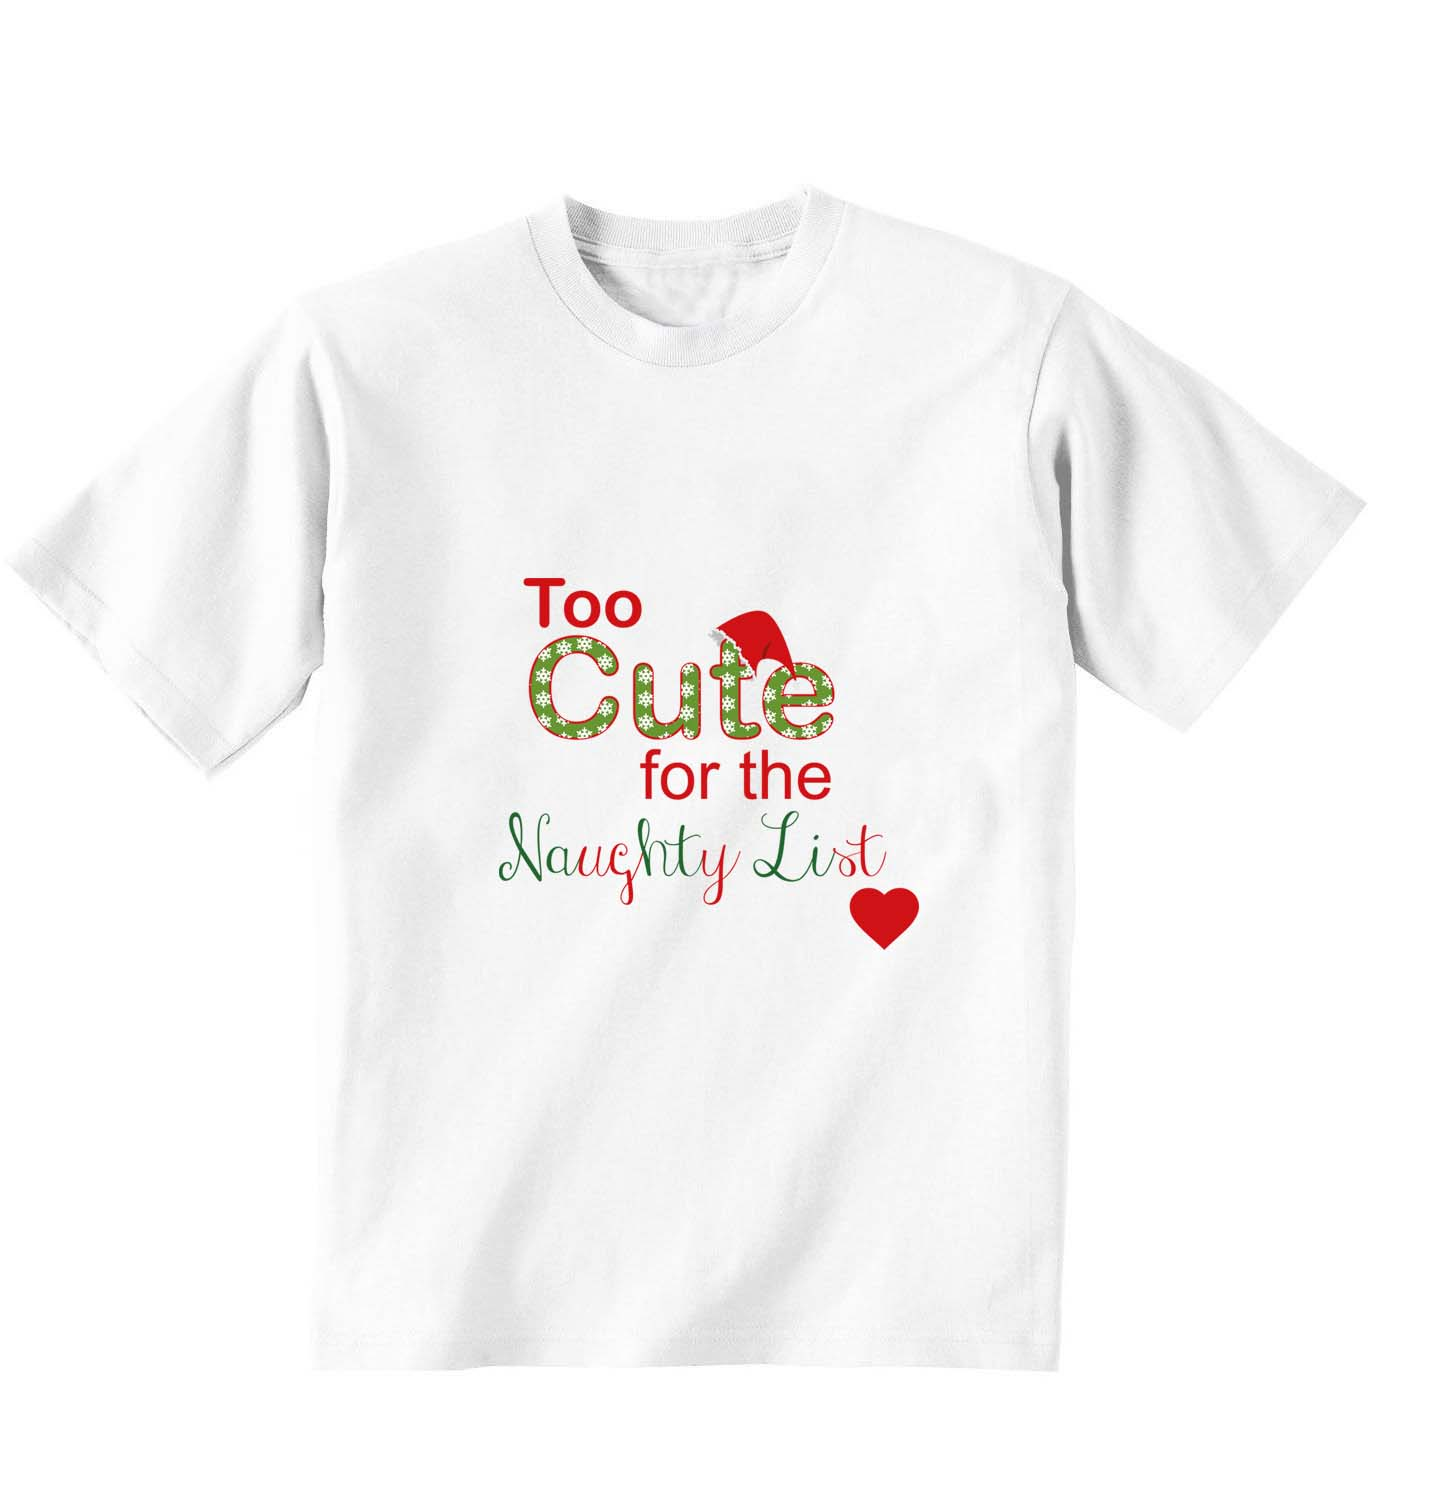 White T-shirt, 100% cotton, machine washable. Age 1-2 years. Print: Too Cute for  the Naughty List